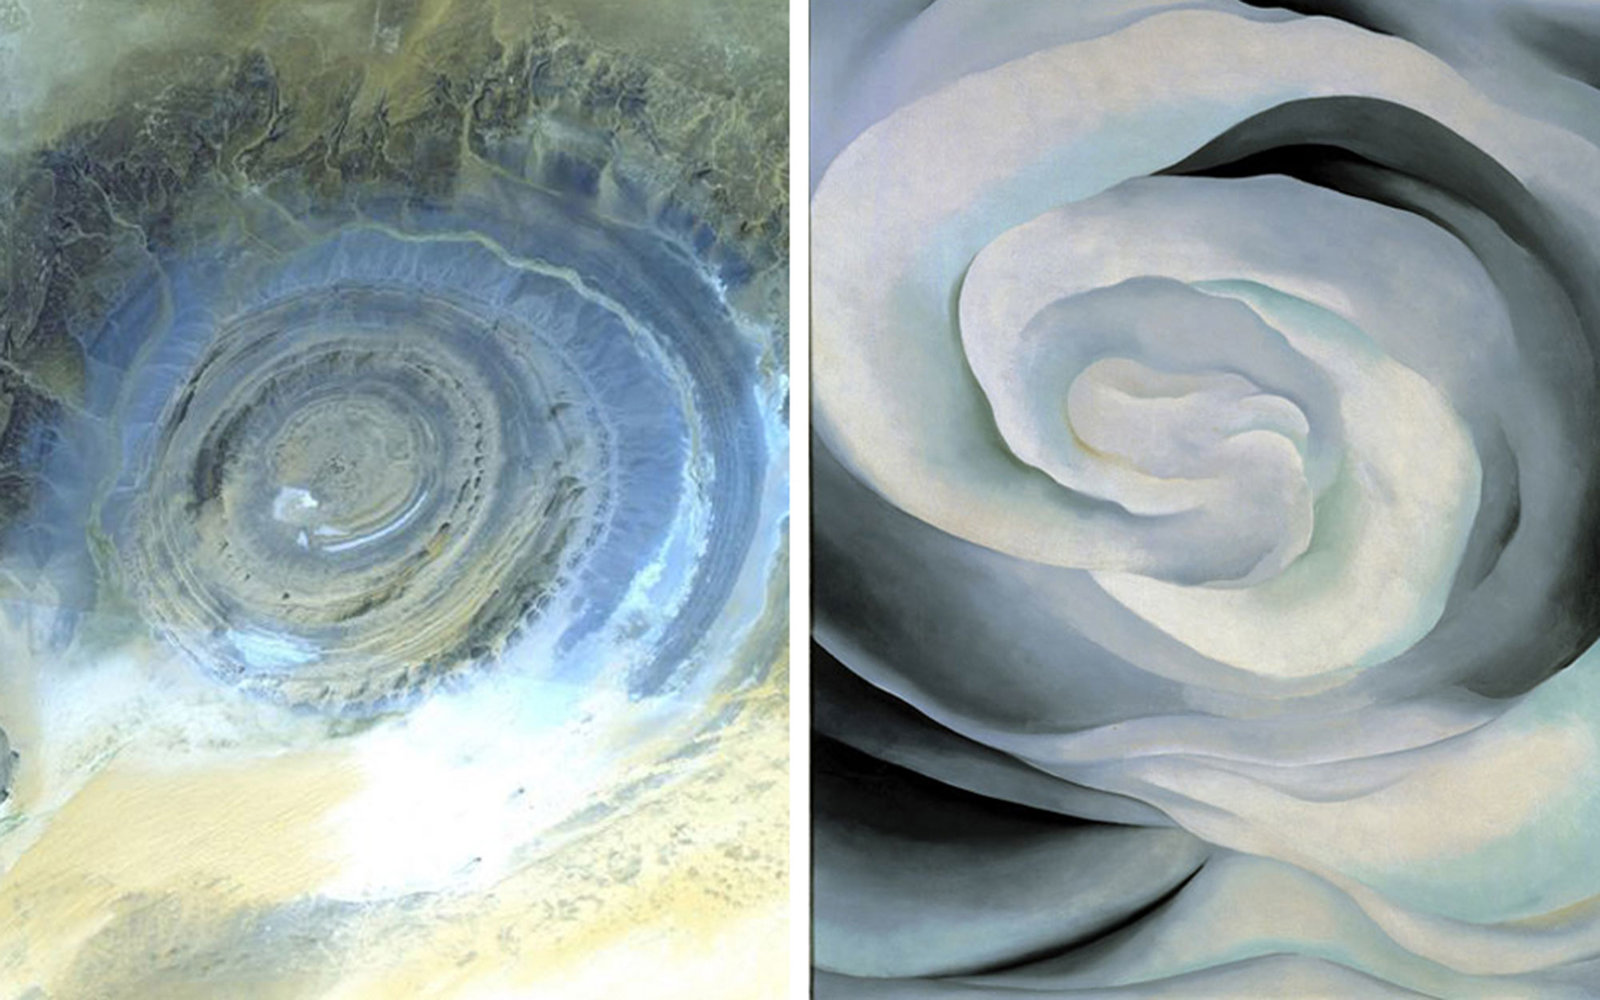 Pictured left: Richat Structure–a circular landmark in the Sahara desert–in Oudane, Mauritania on October 7, 2000; Pictured right: Georgia O'Keeffe, Abstraction White Rose, 1927